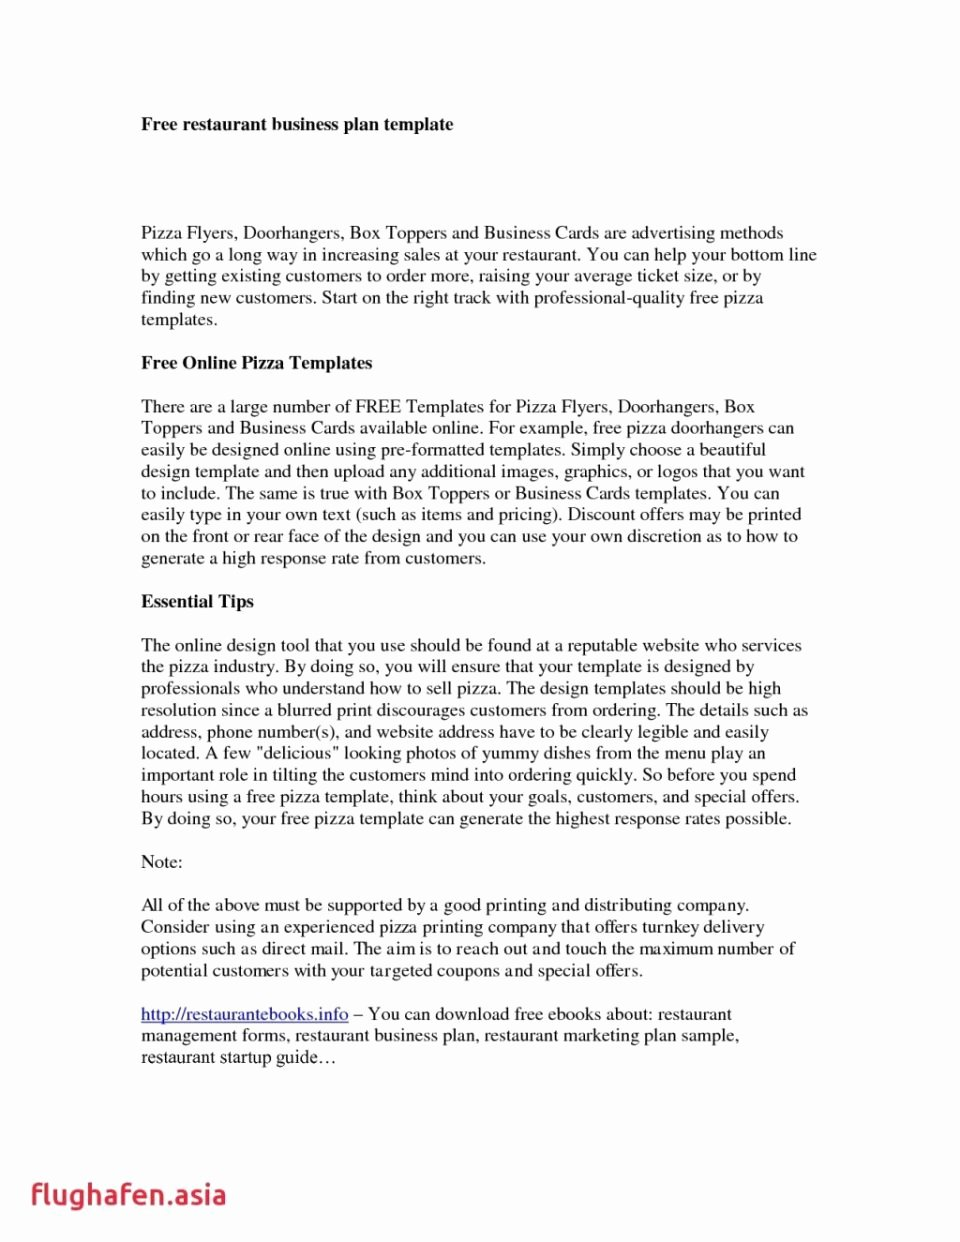 Consulting Proposal Template Mckinsey Best Of Consulting Report Example Build Aid Sample Analysis Incl